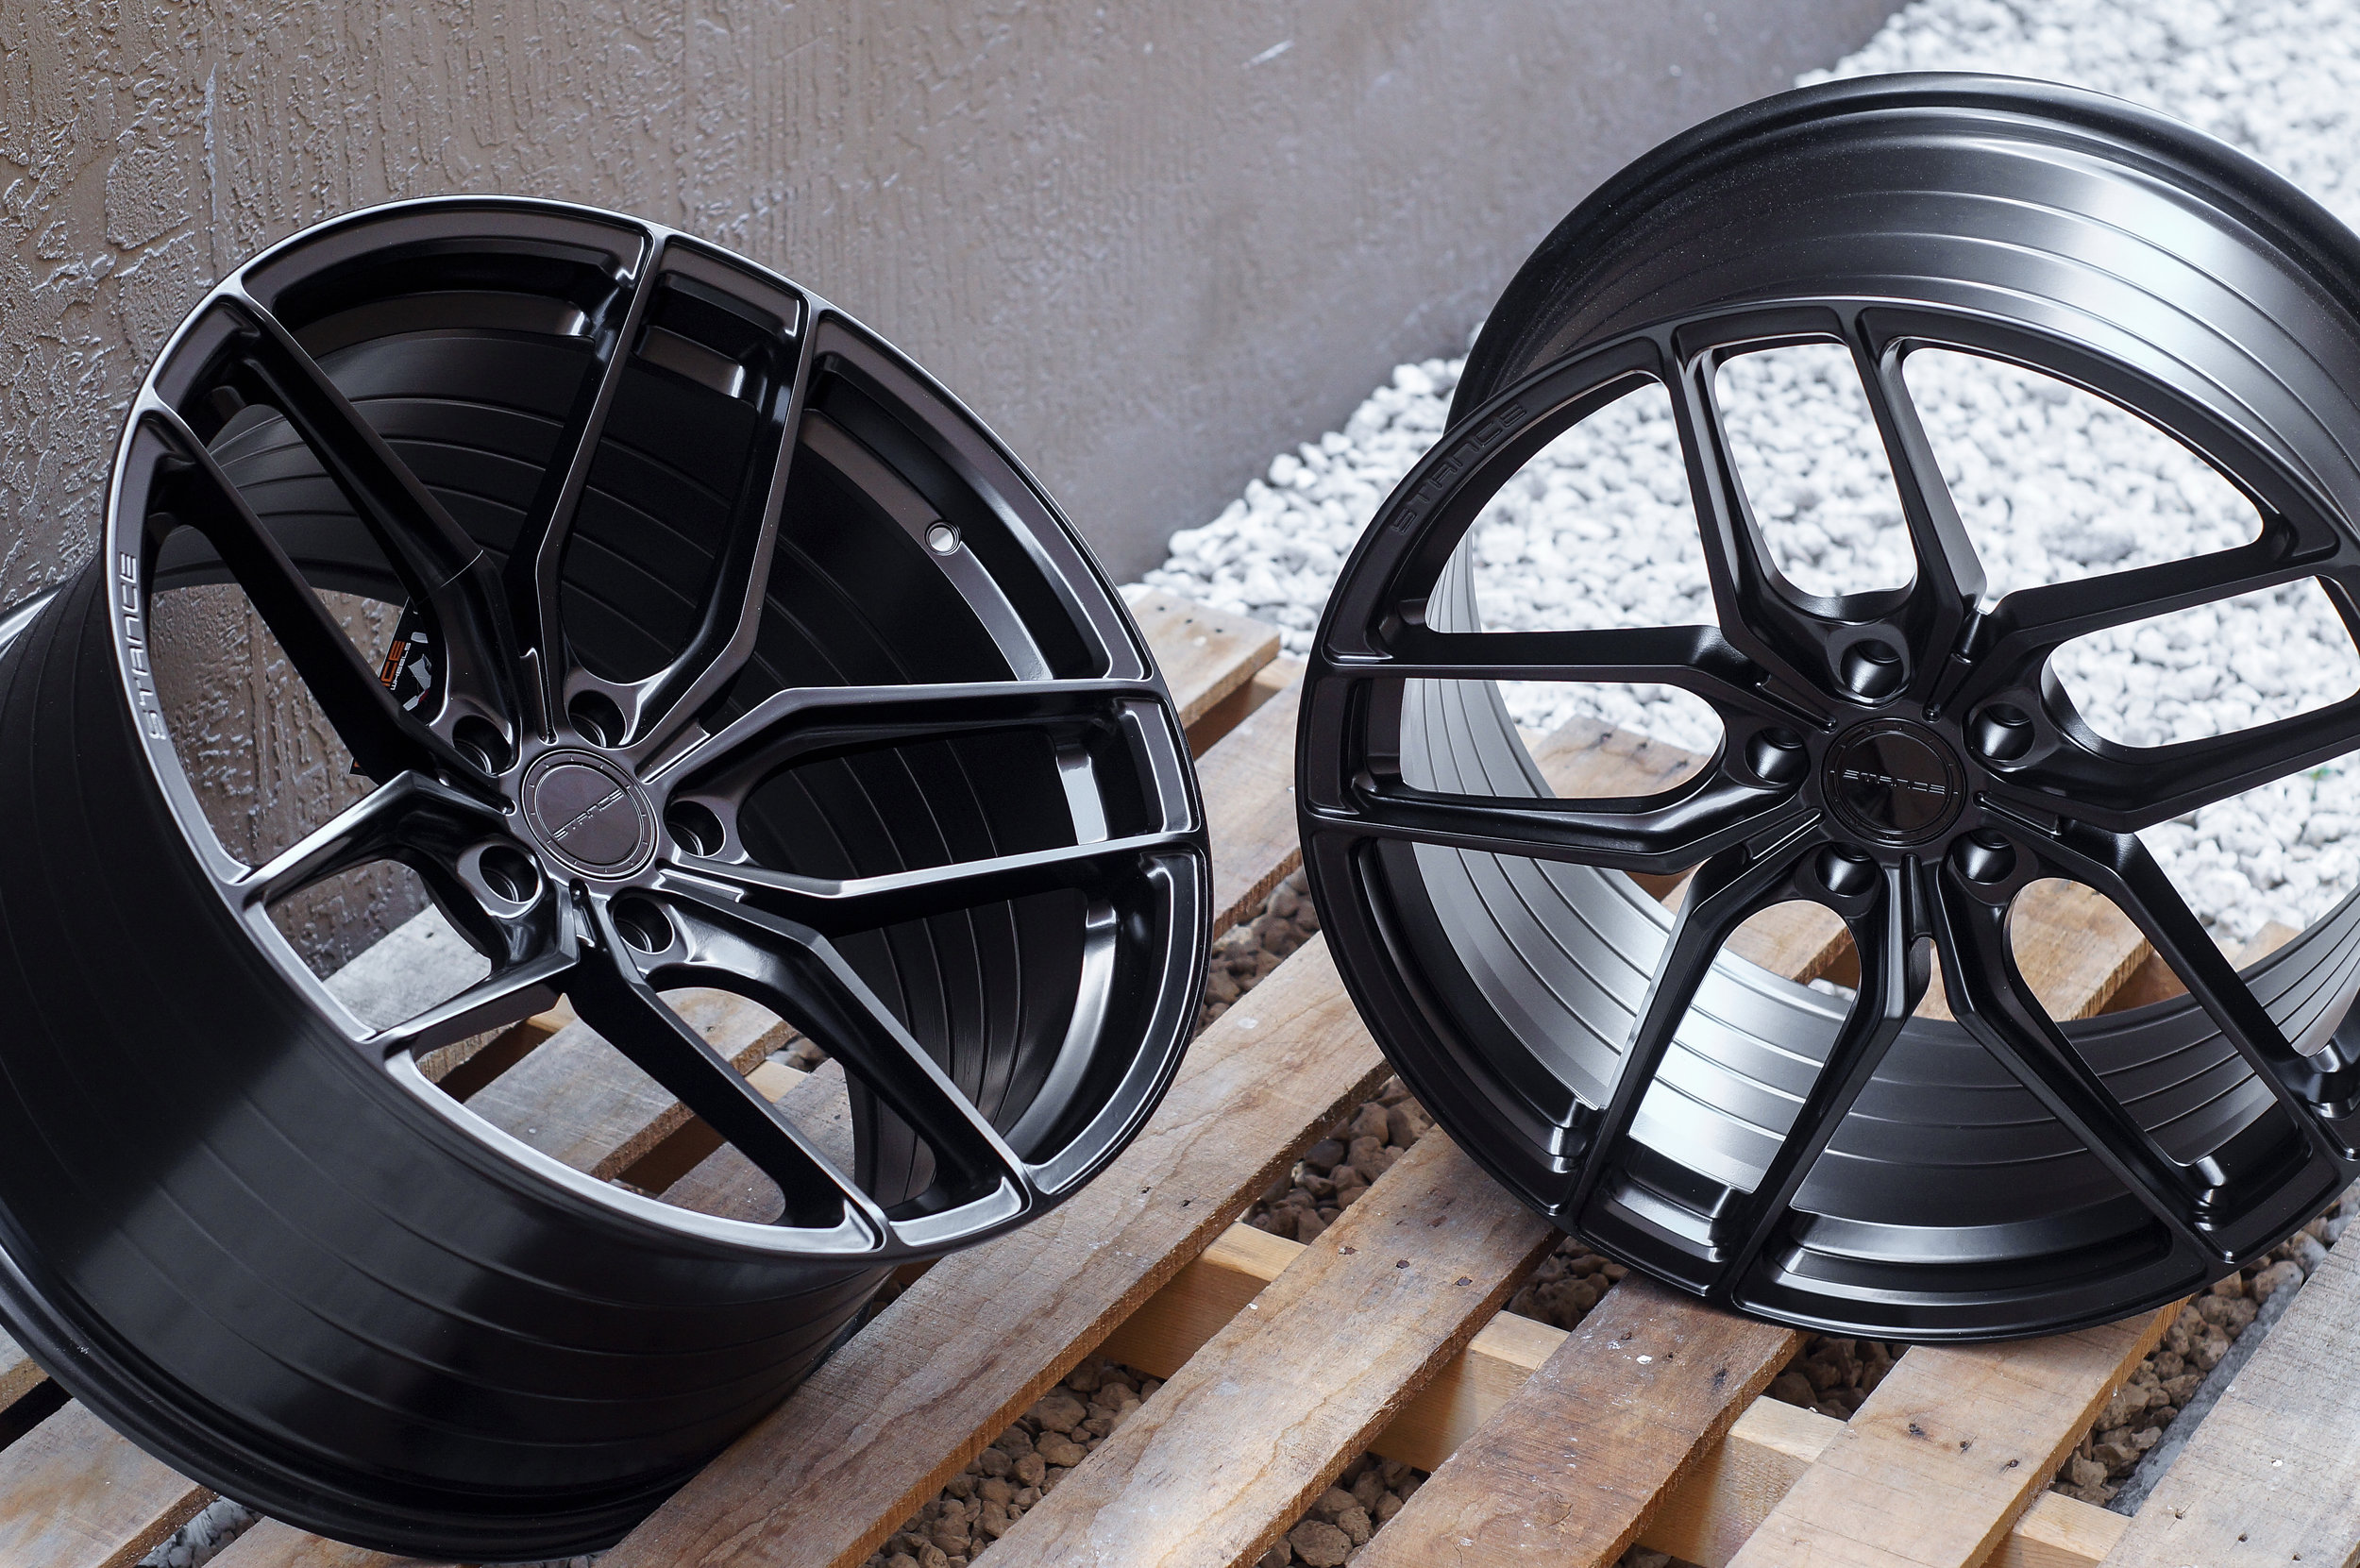 Offering Custom Forged Multi-Piece & Monoblock Wheels From Top Manufacturers. Get Expert Fitment Today! -